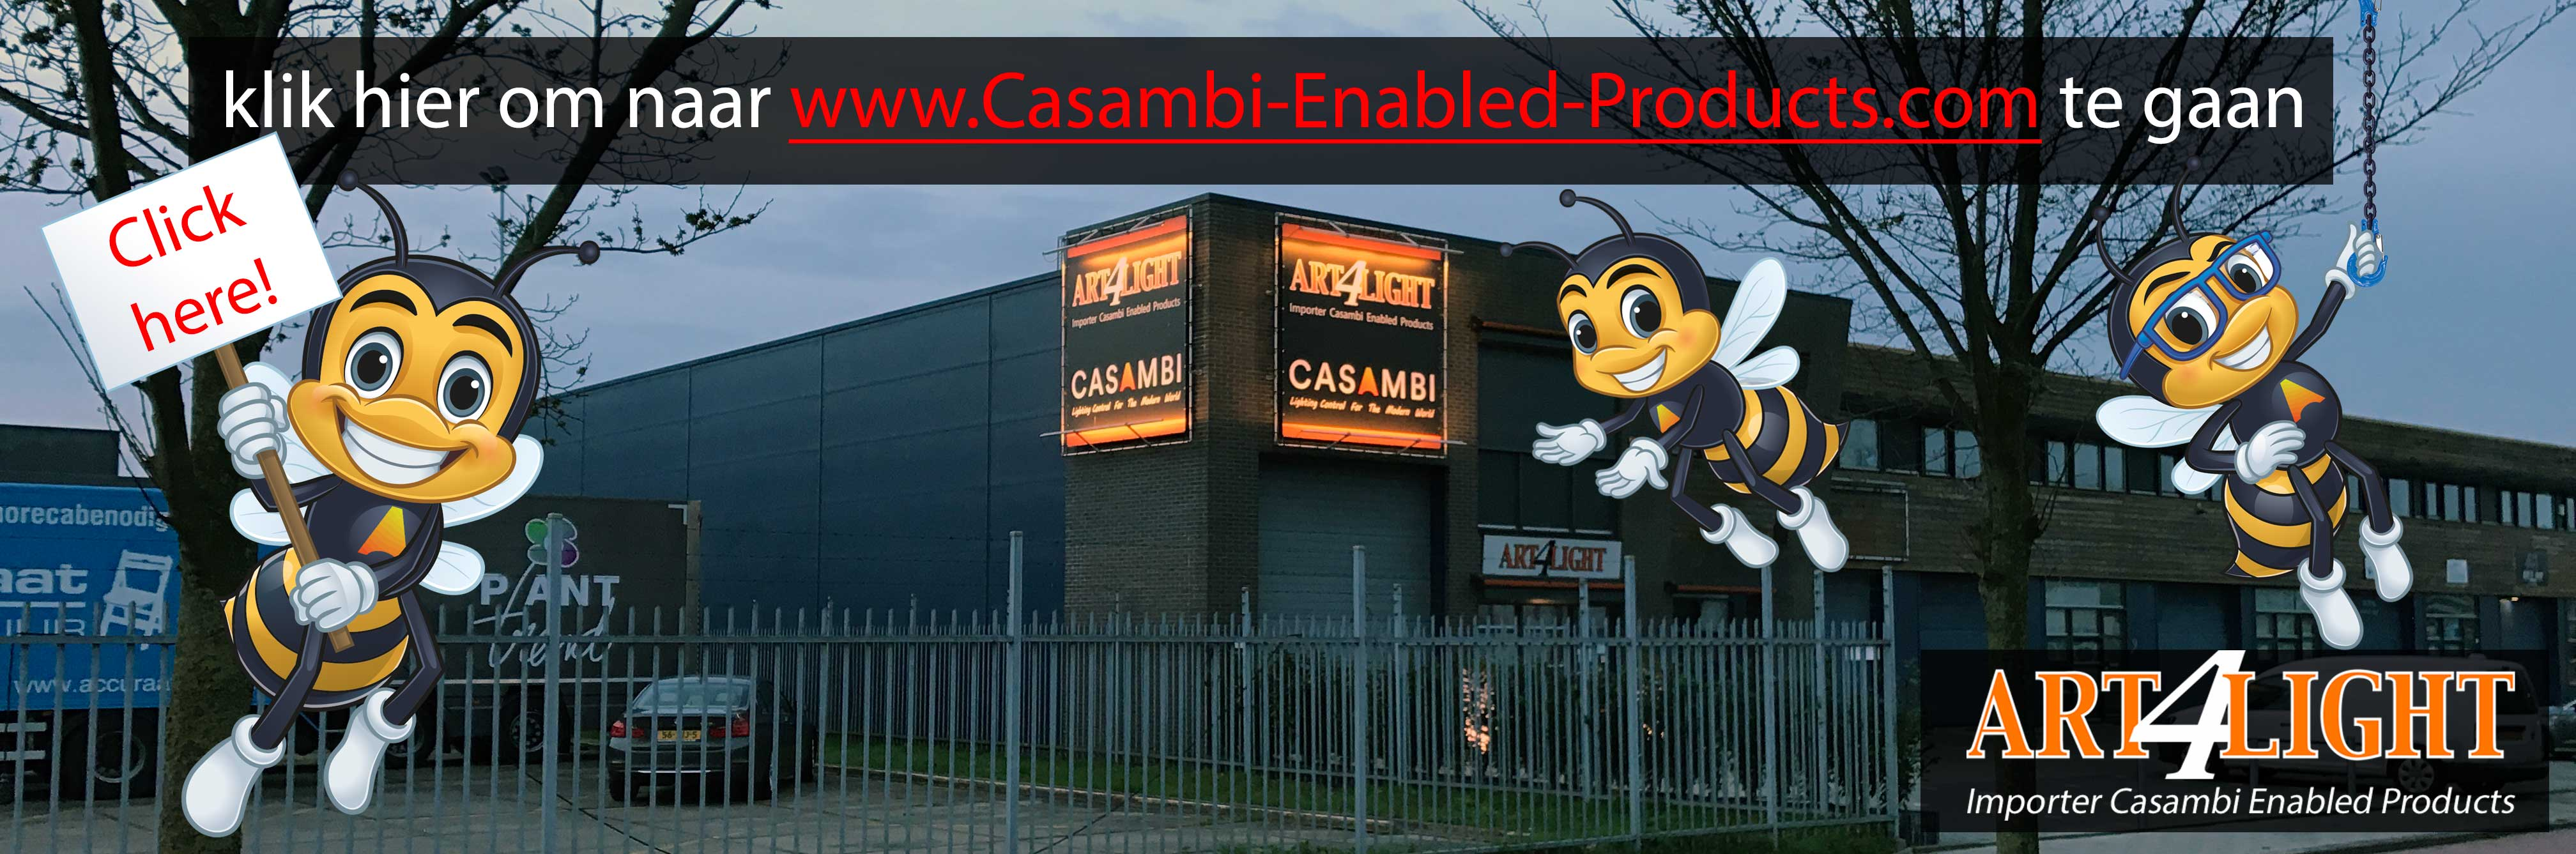 Naar Casambi-Enabled-Products